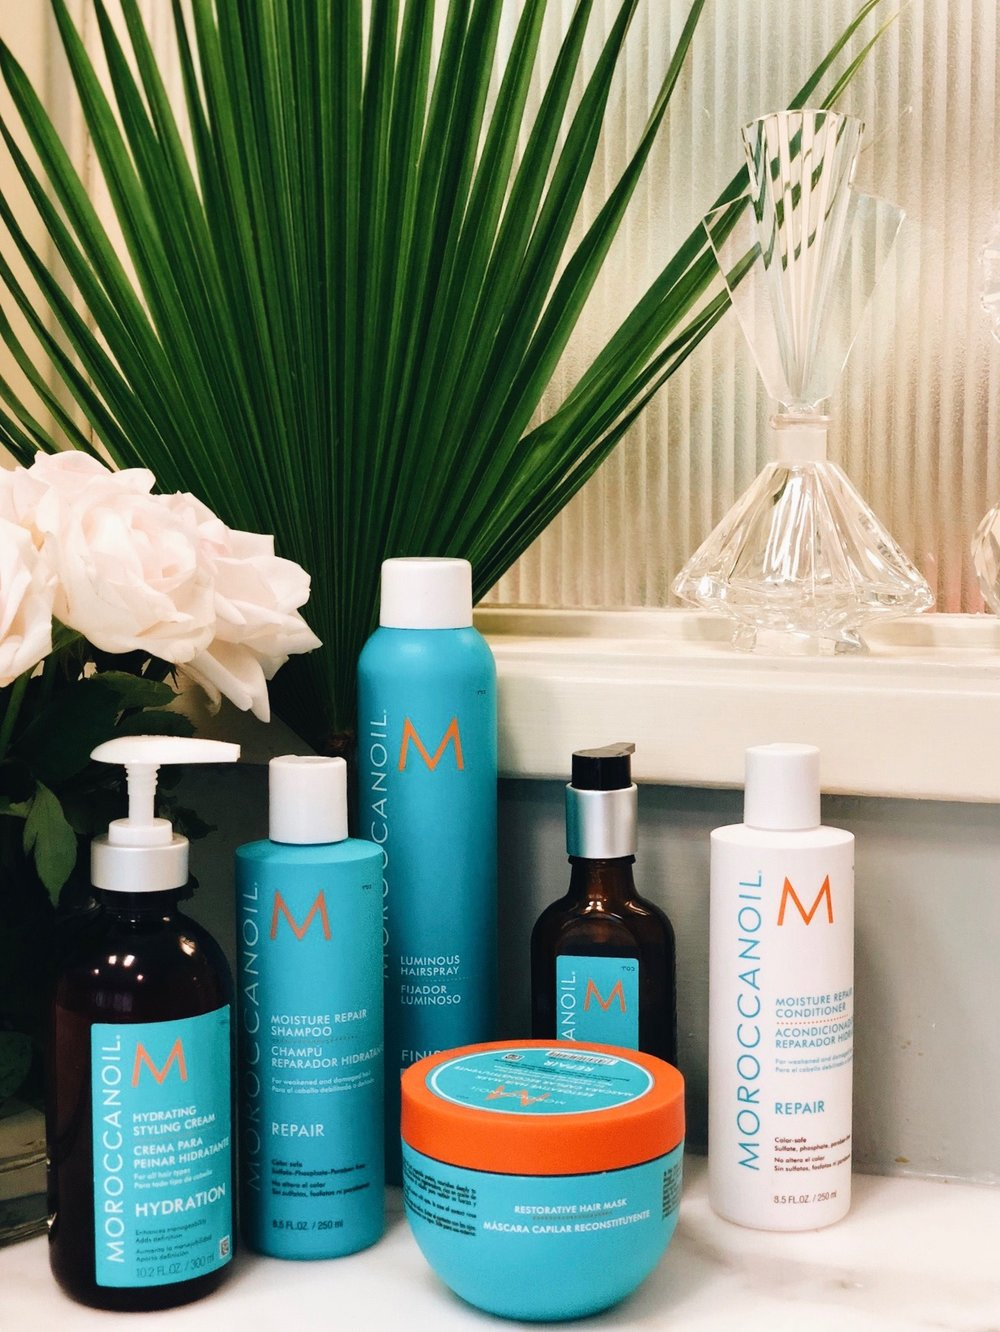 Tune in 10/4 to see my Instagram Story takeover on the  Moroccanoil Instagram  channel!